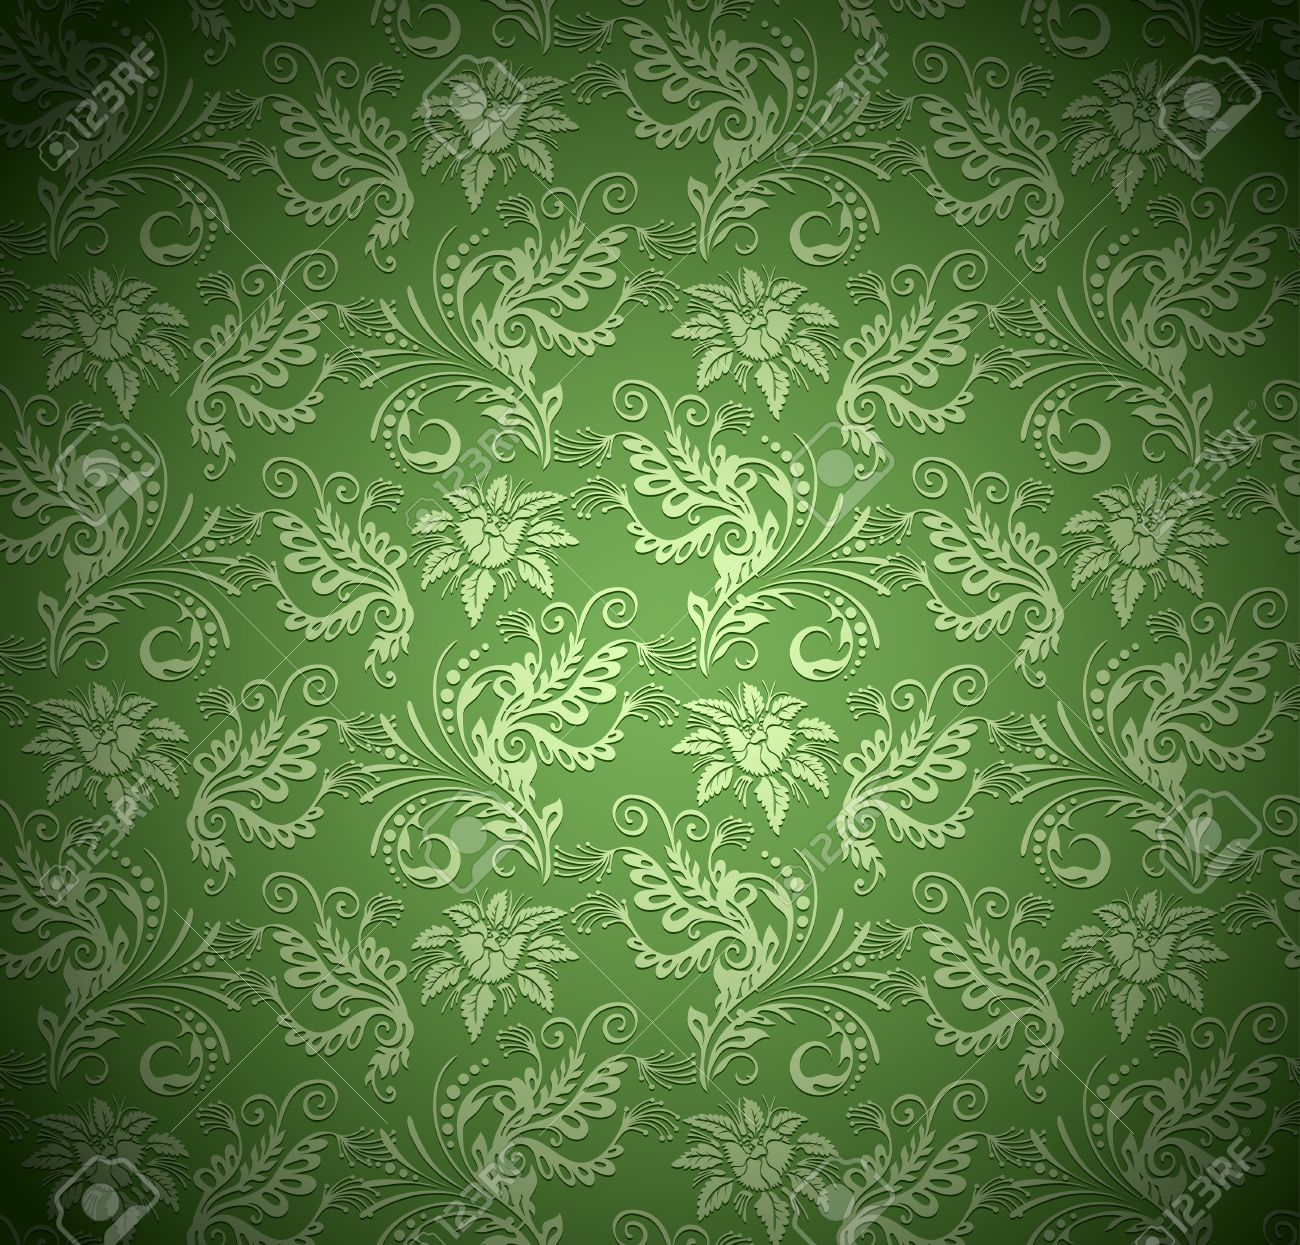 Vintage background texture. Christmas wallpaper design